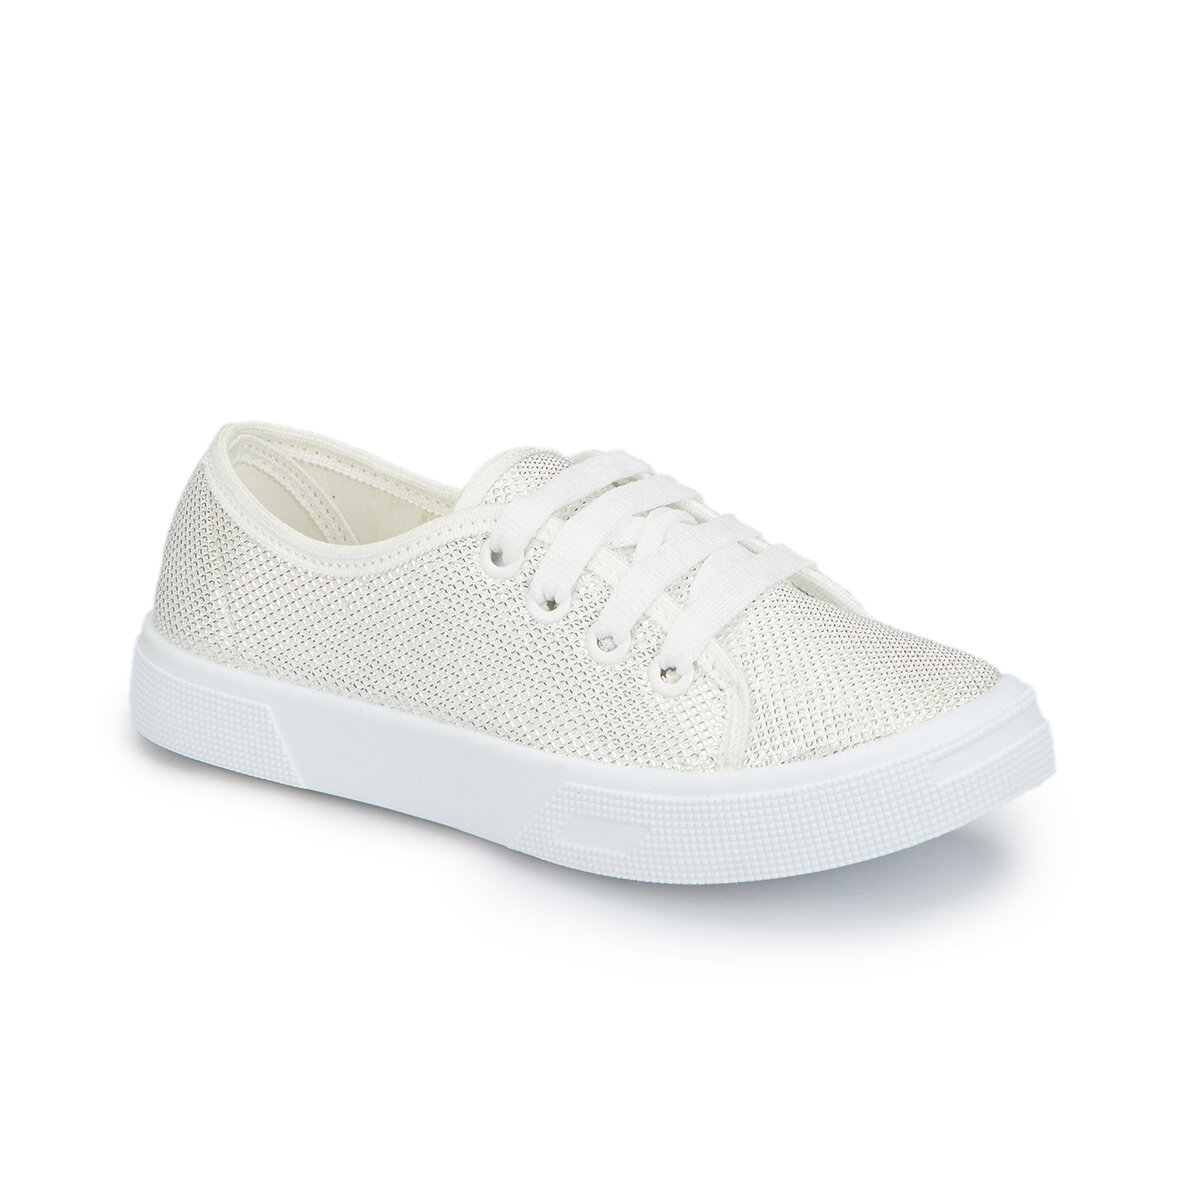 FLO 81. 509151.F White Female Child Sneaker Shoes Polaris